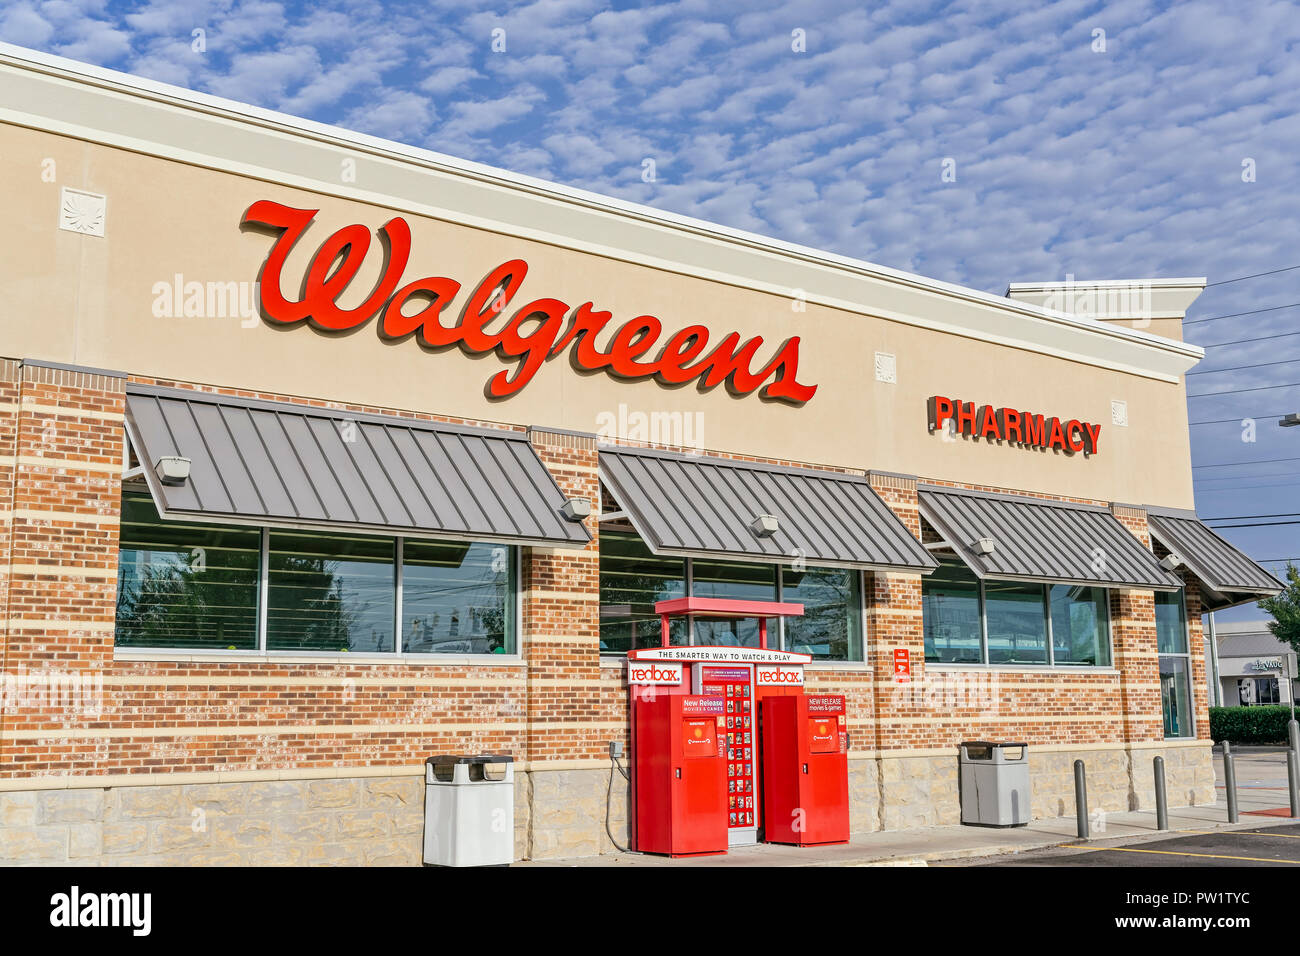 Is Walgreens Open On Christmas.Walgreens Stock Photos Walgreens Stock Images Alamy